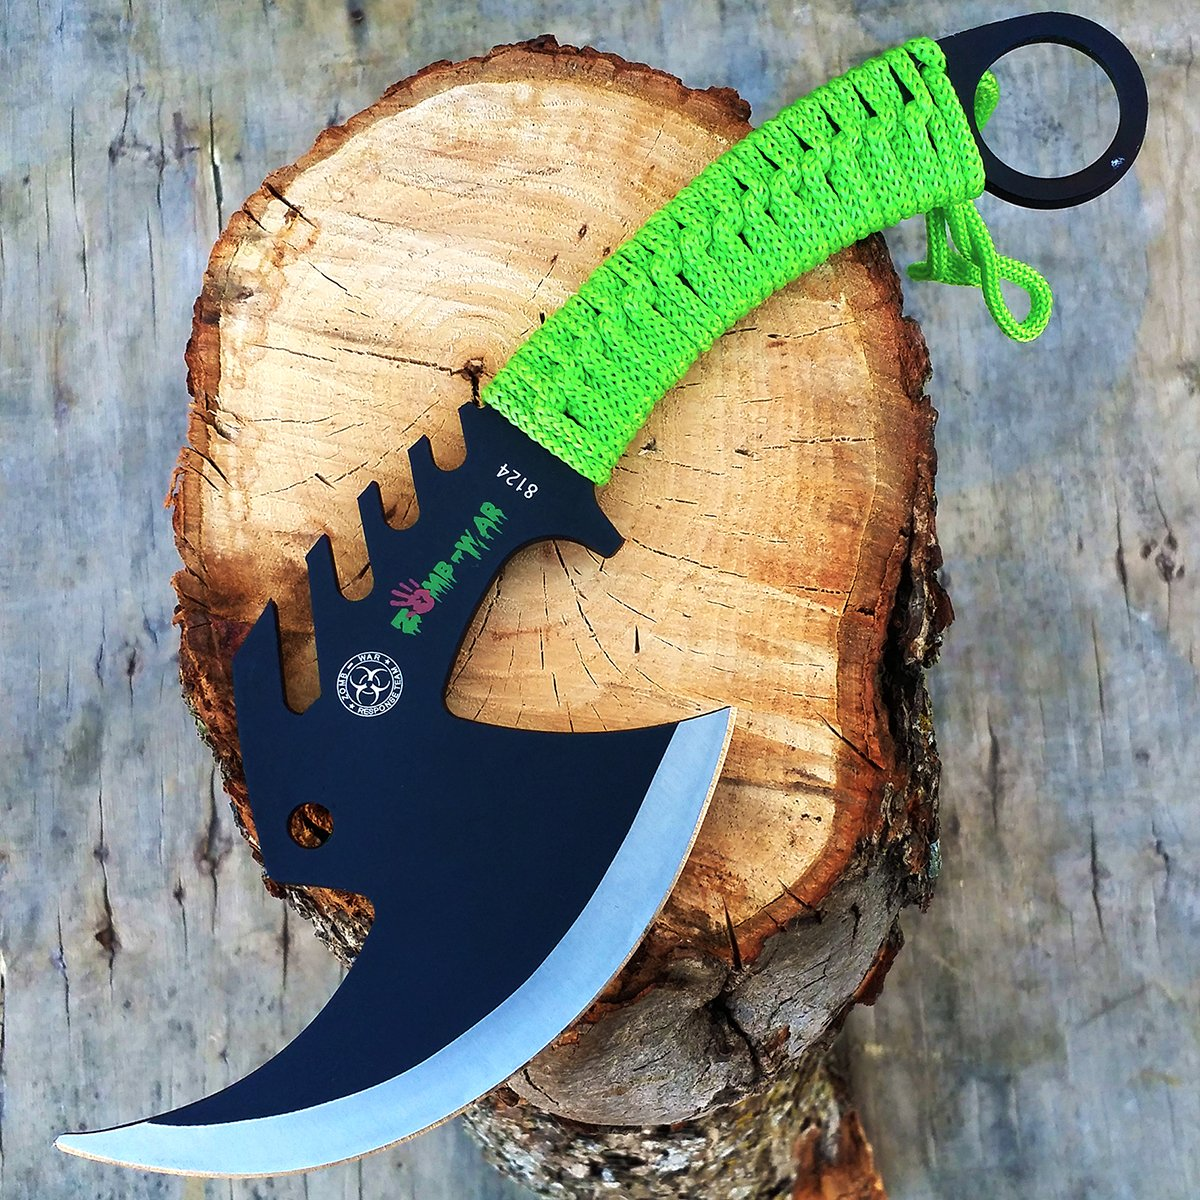 Biohazard 11'' Z-Hunter Tactical Survival Tomahawk Battle Hatchet Outdoor Hunting Camping Throwing Axe Razor Sharp cleaver Zombie Apocalypse Knife   with Holt Multi Tool Key Chain